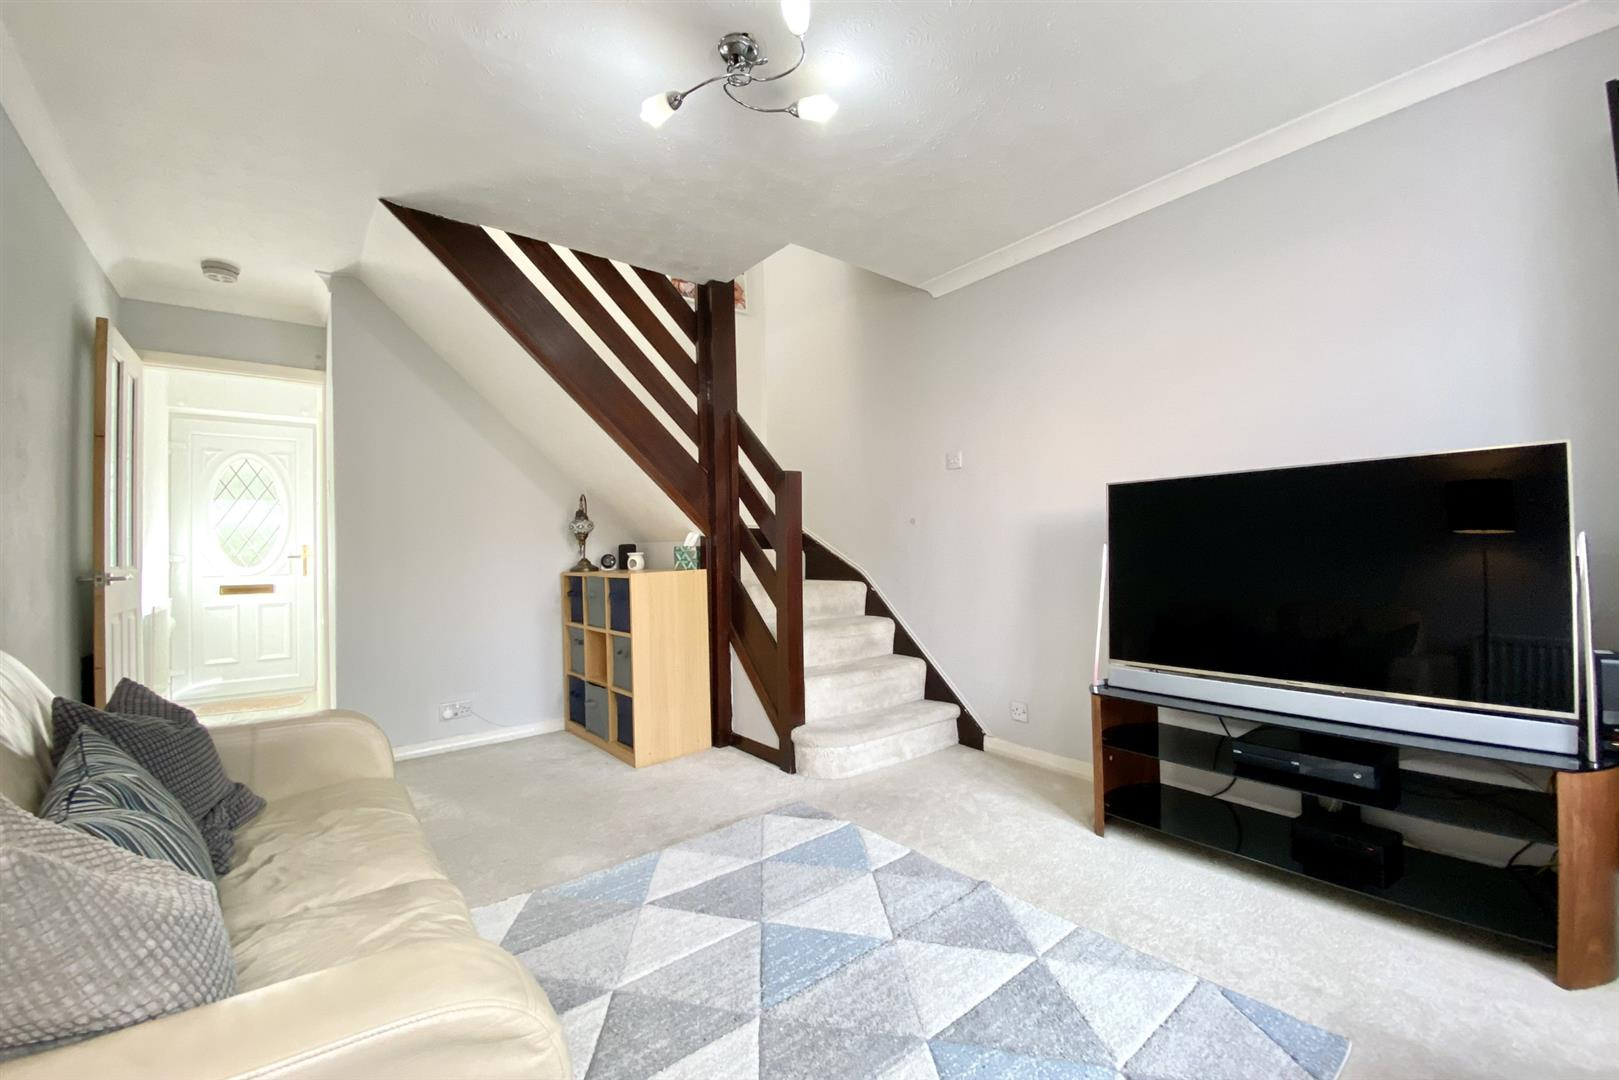 1 bed terraced for sale, RG6